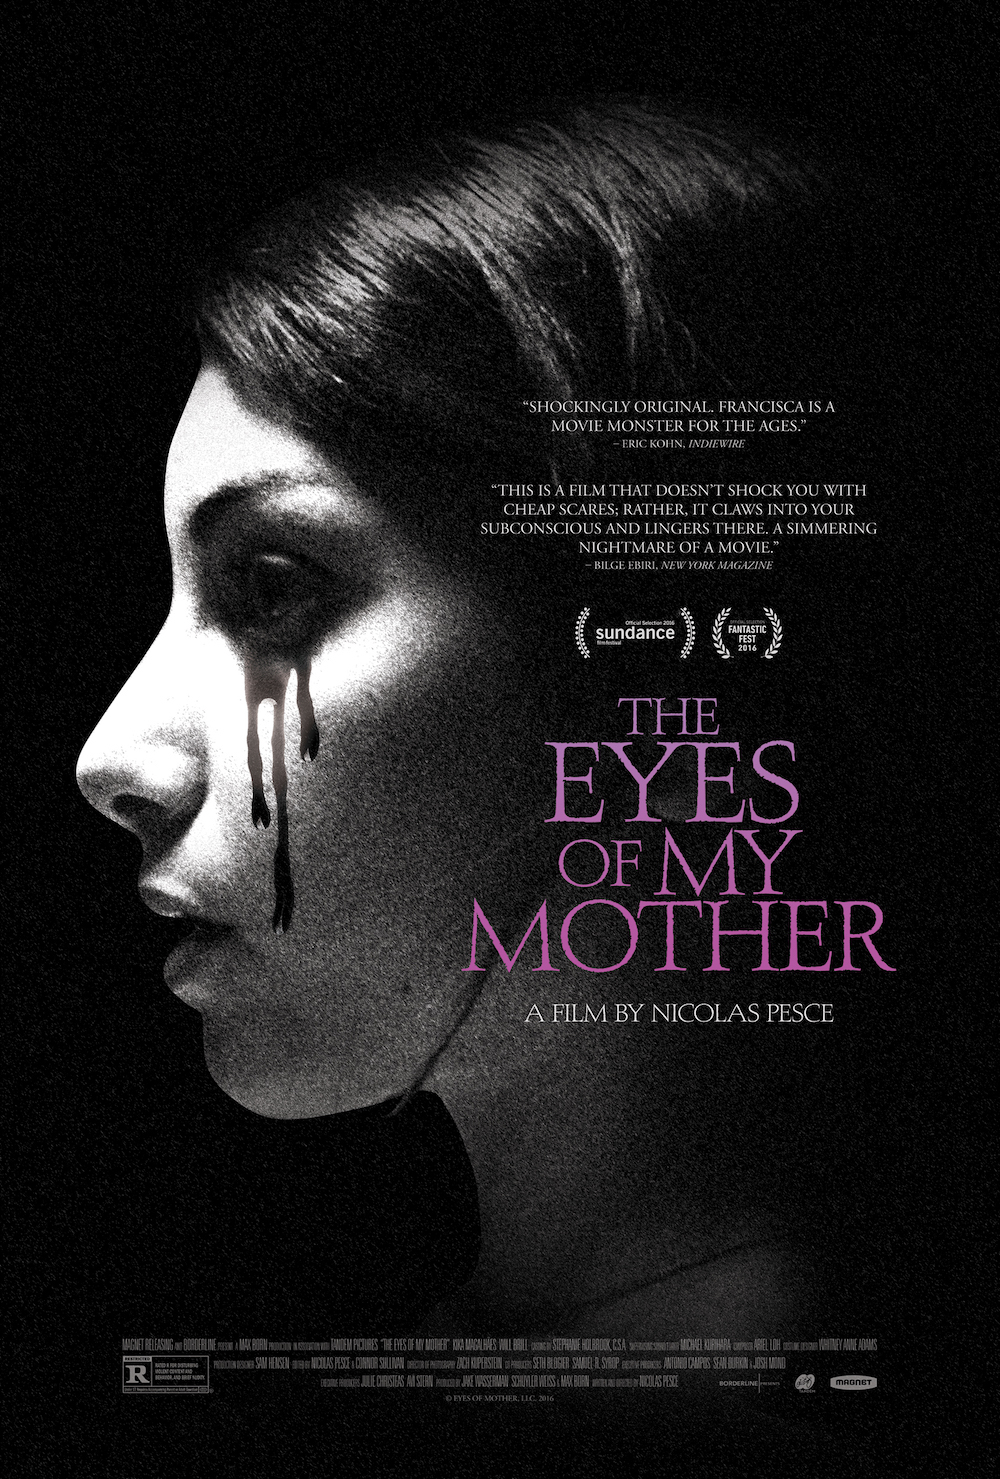 Poster design top 10 - Eyesofmymother_web Jpg